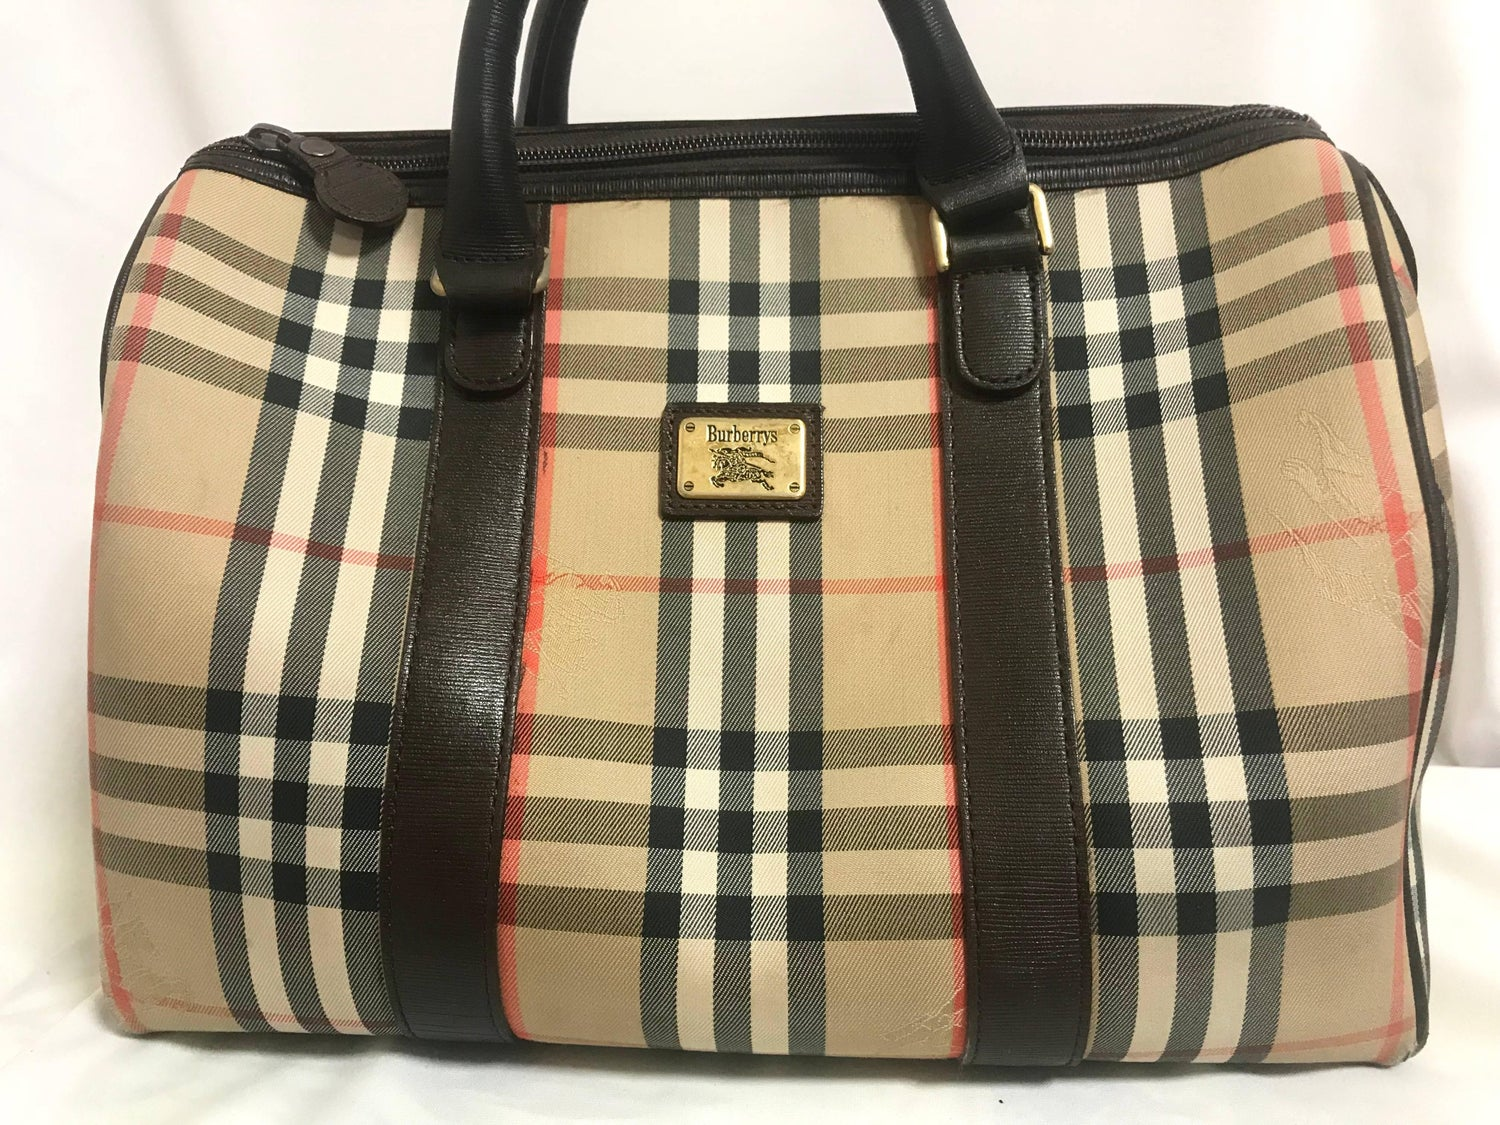 1stdibs Vintage Burberry Classic Beige And Brown Nova Check Handbag. Unisex Purse VJogkTRh